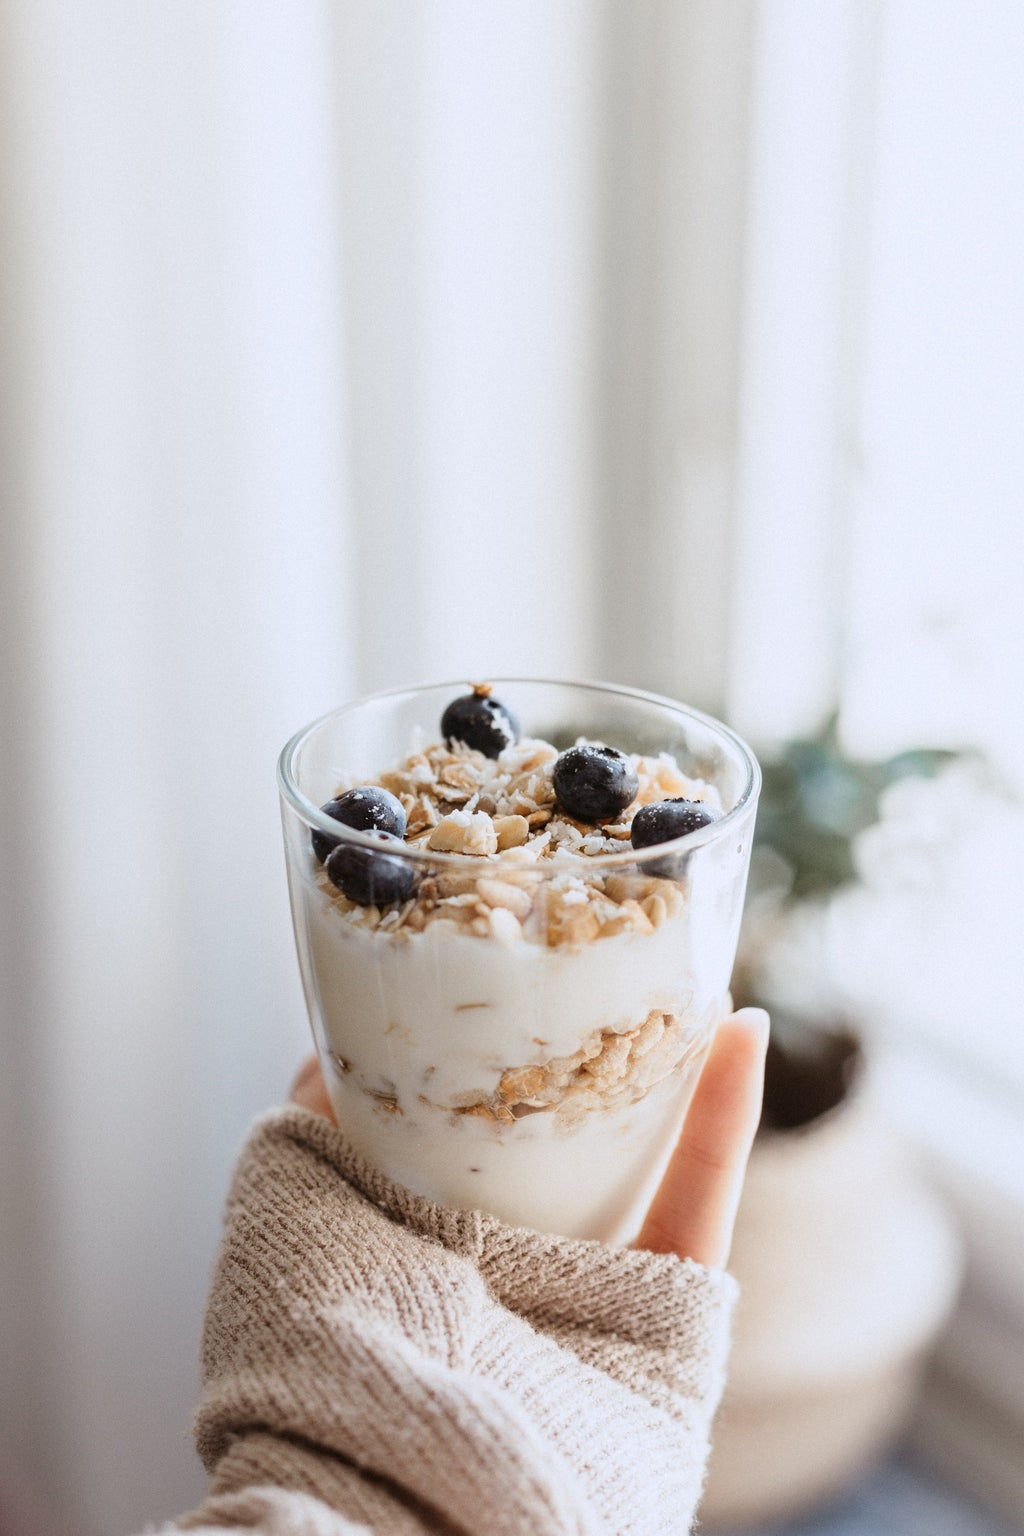 Healthy food in clear drinking glass